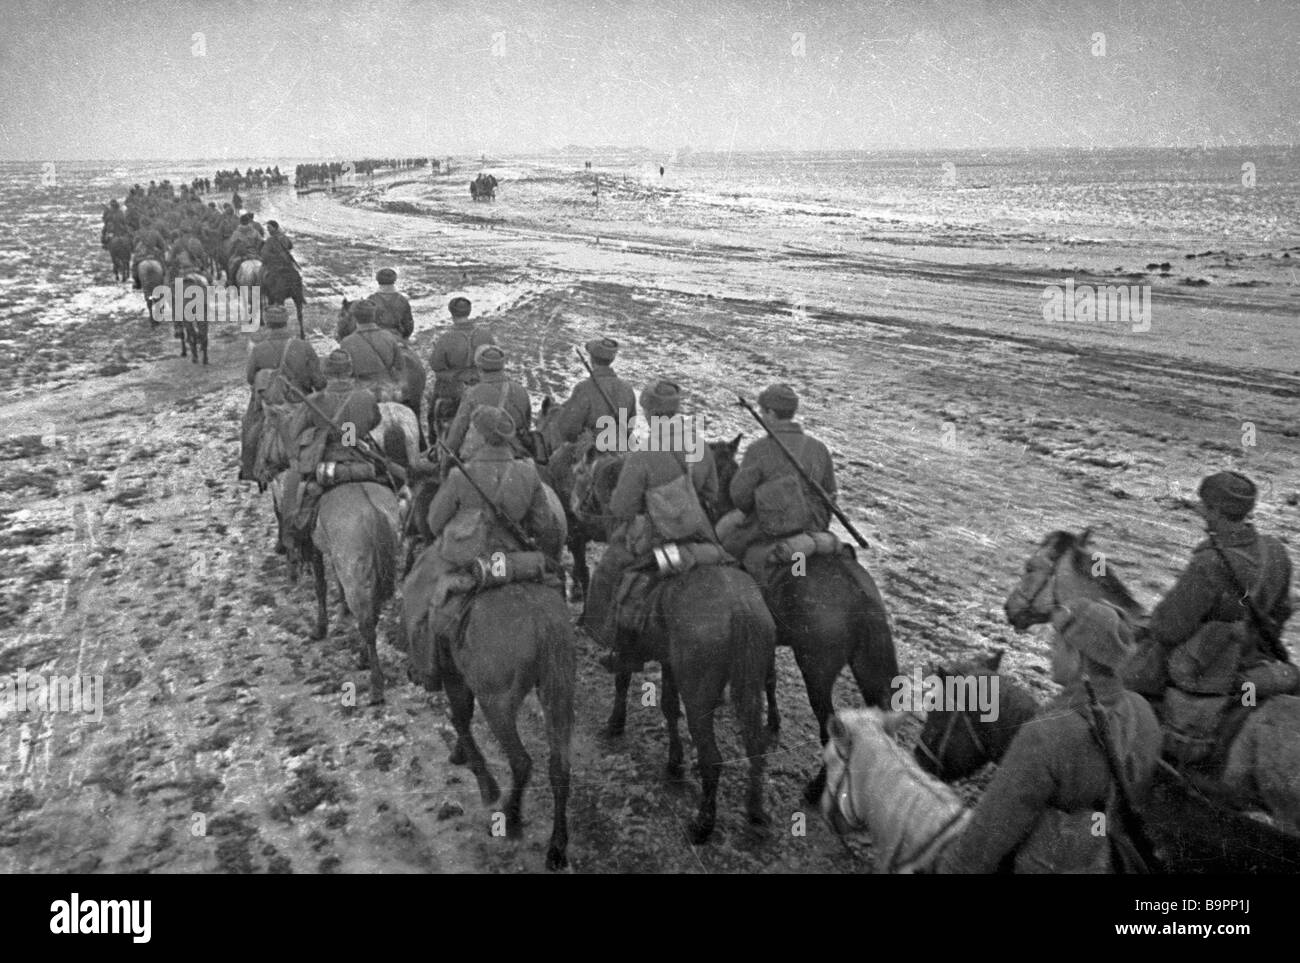 Cavalry units of the 3rd Ukrainian front approach Odessa - Stock Image